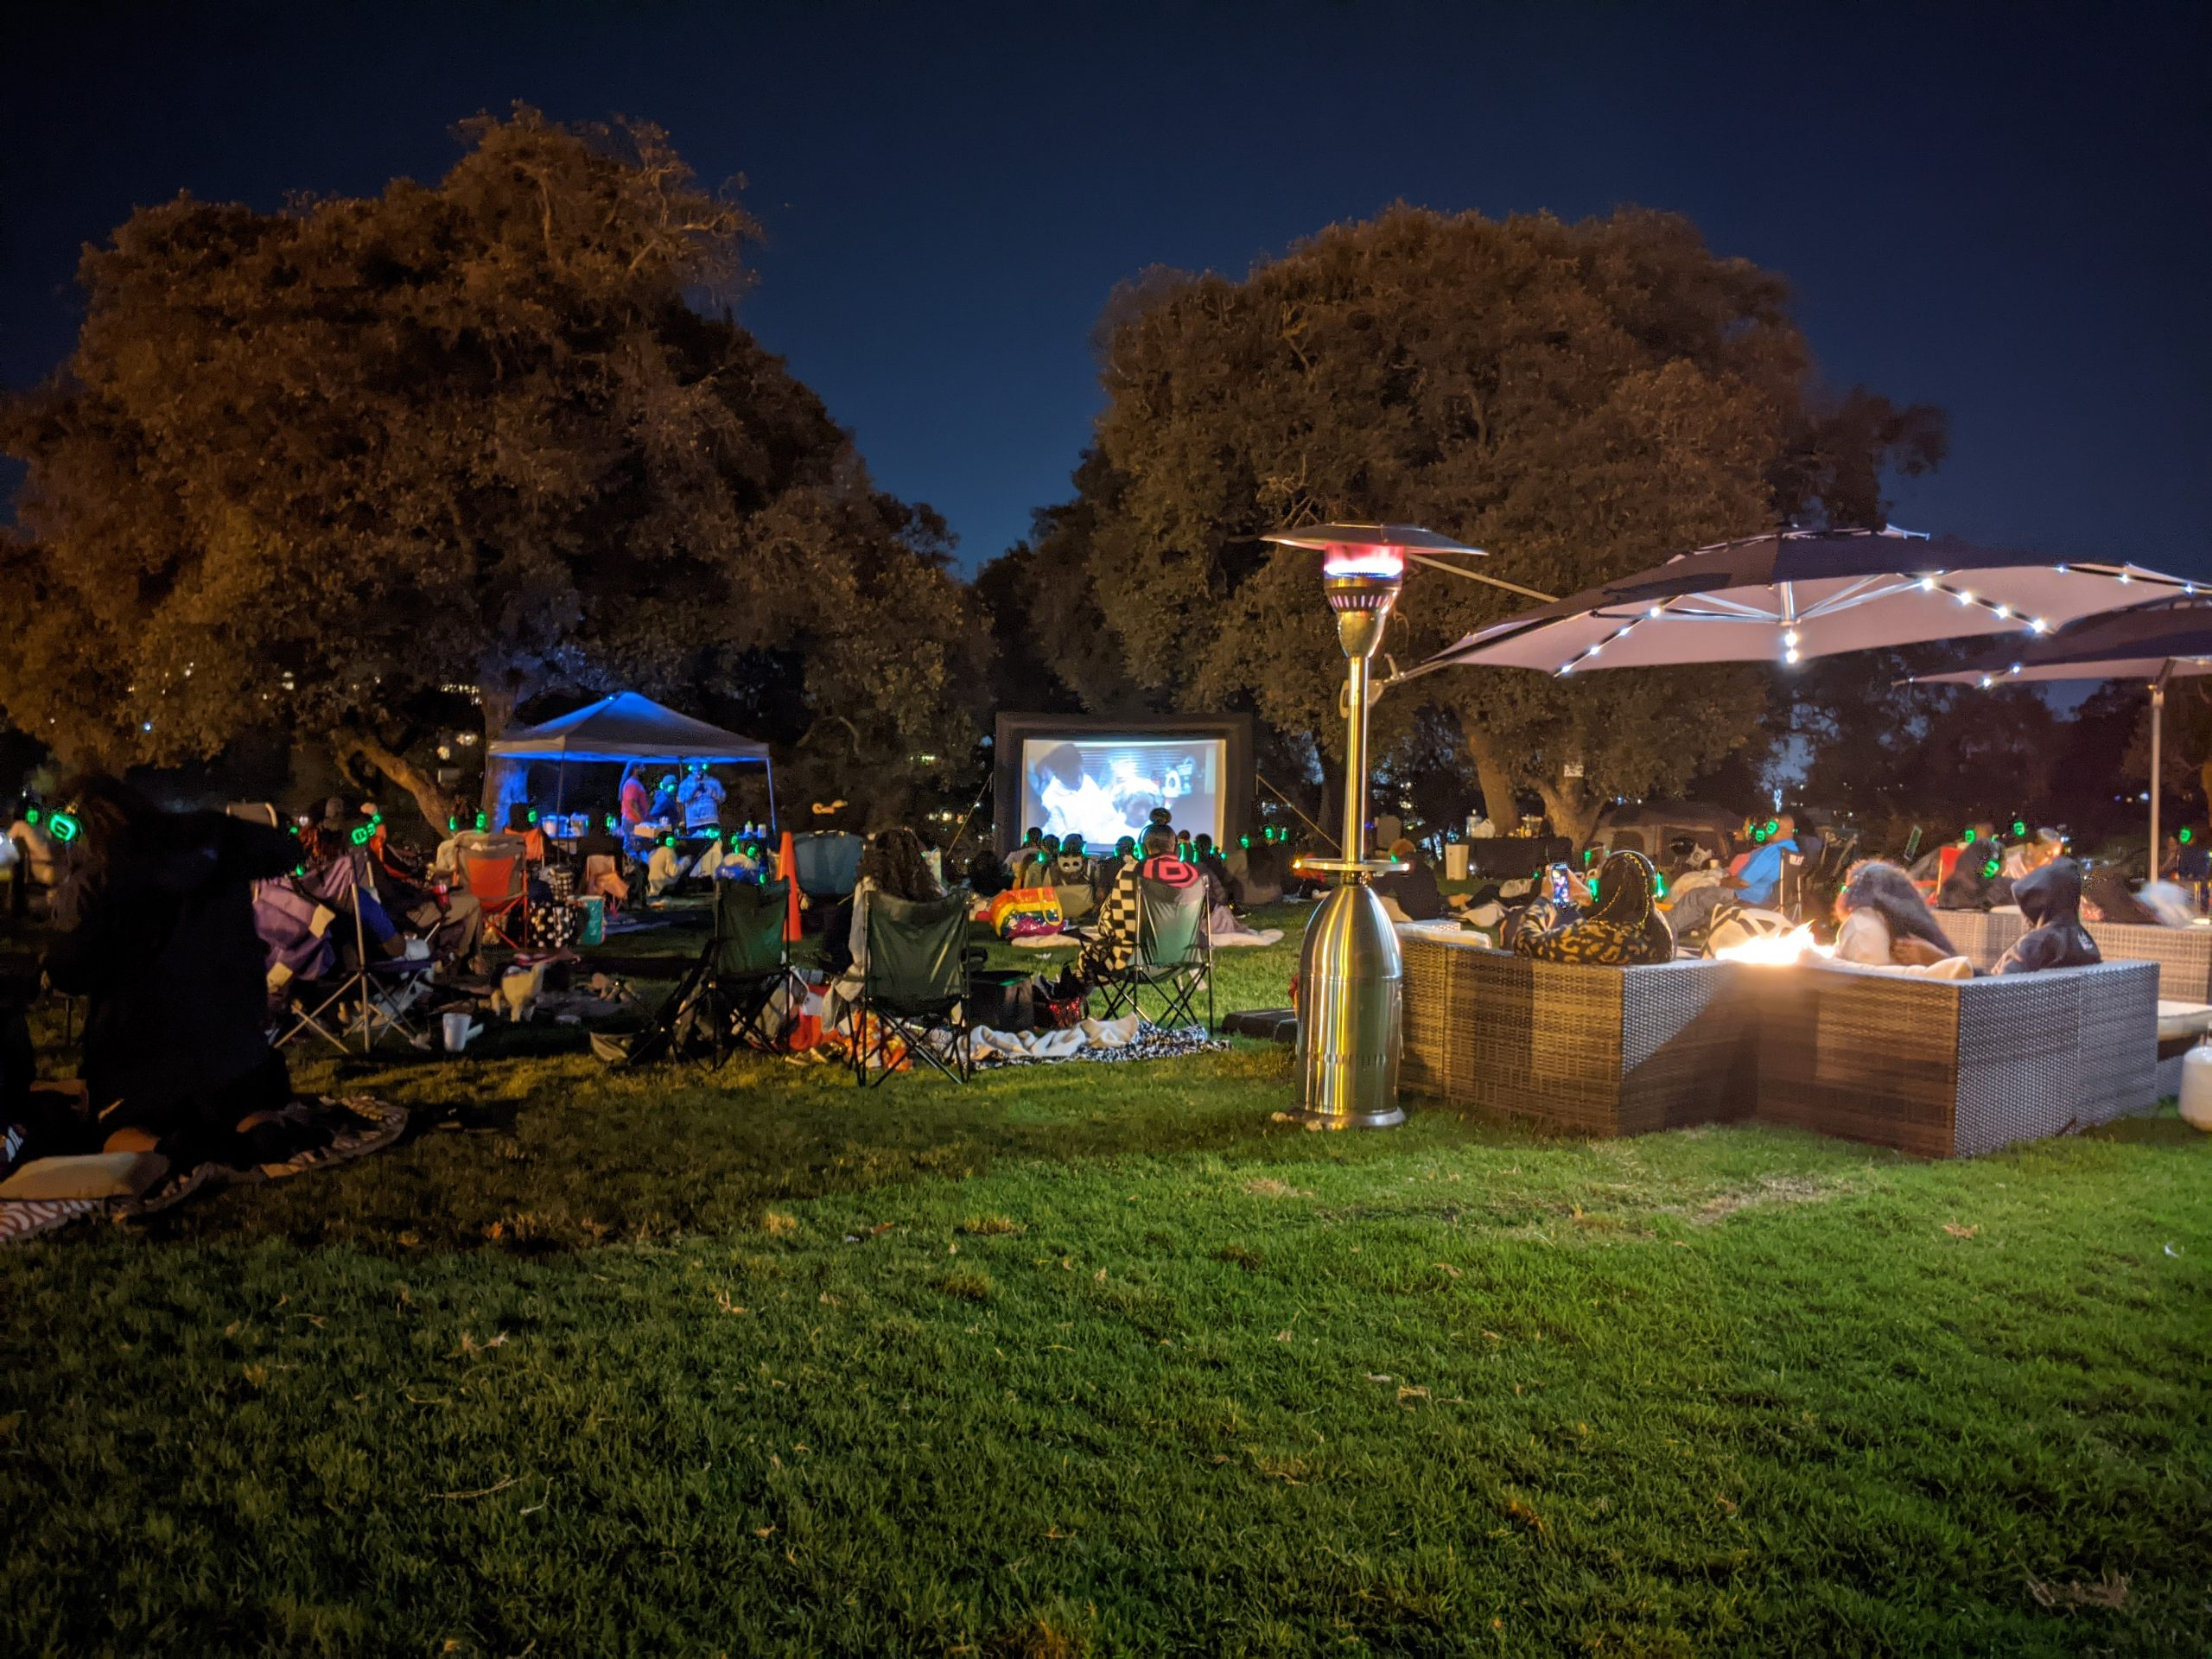 a night time scene at Lake Merritt, where people are watching a film outside.